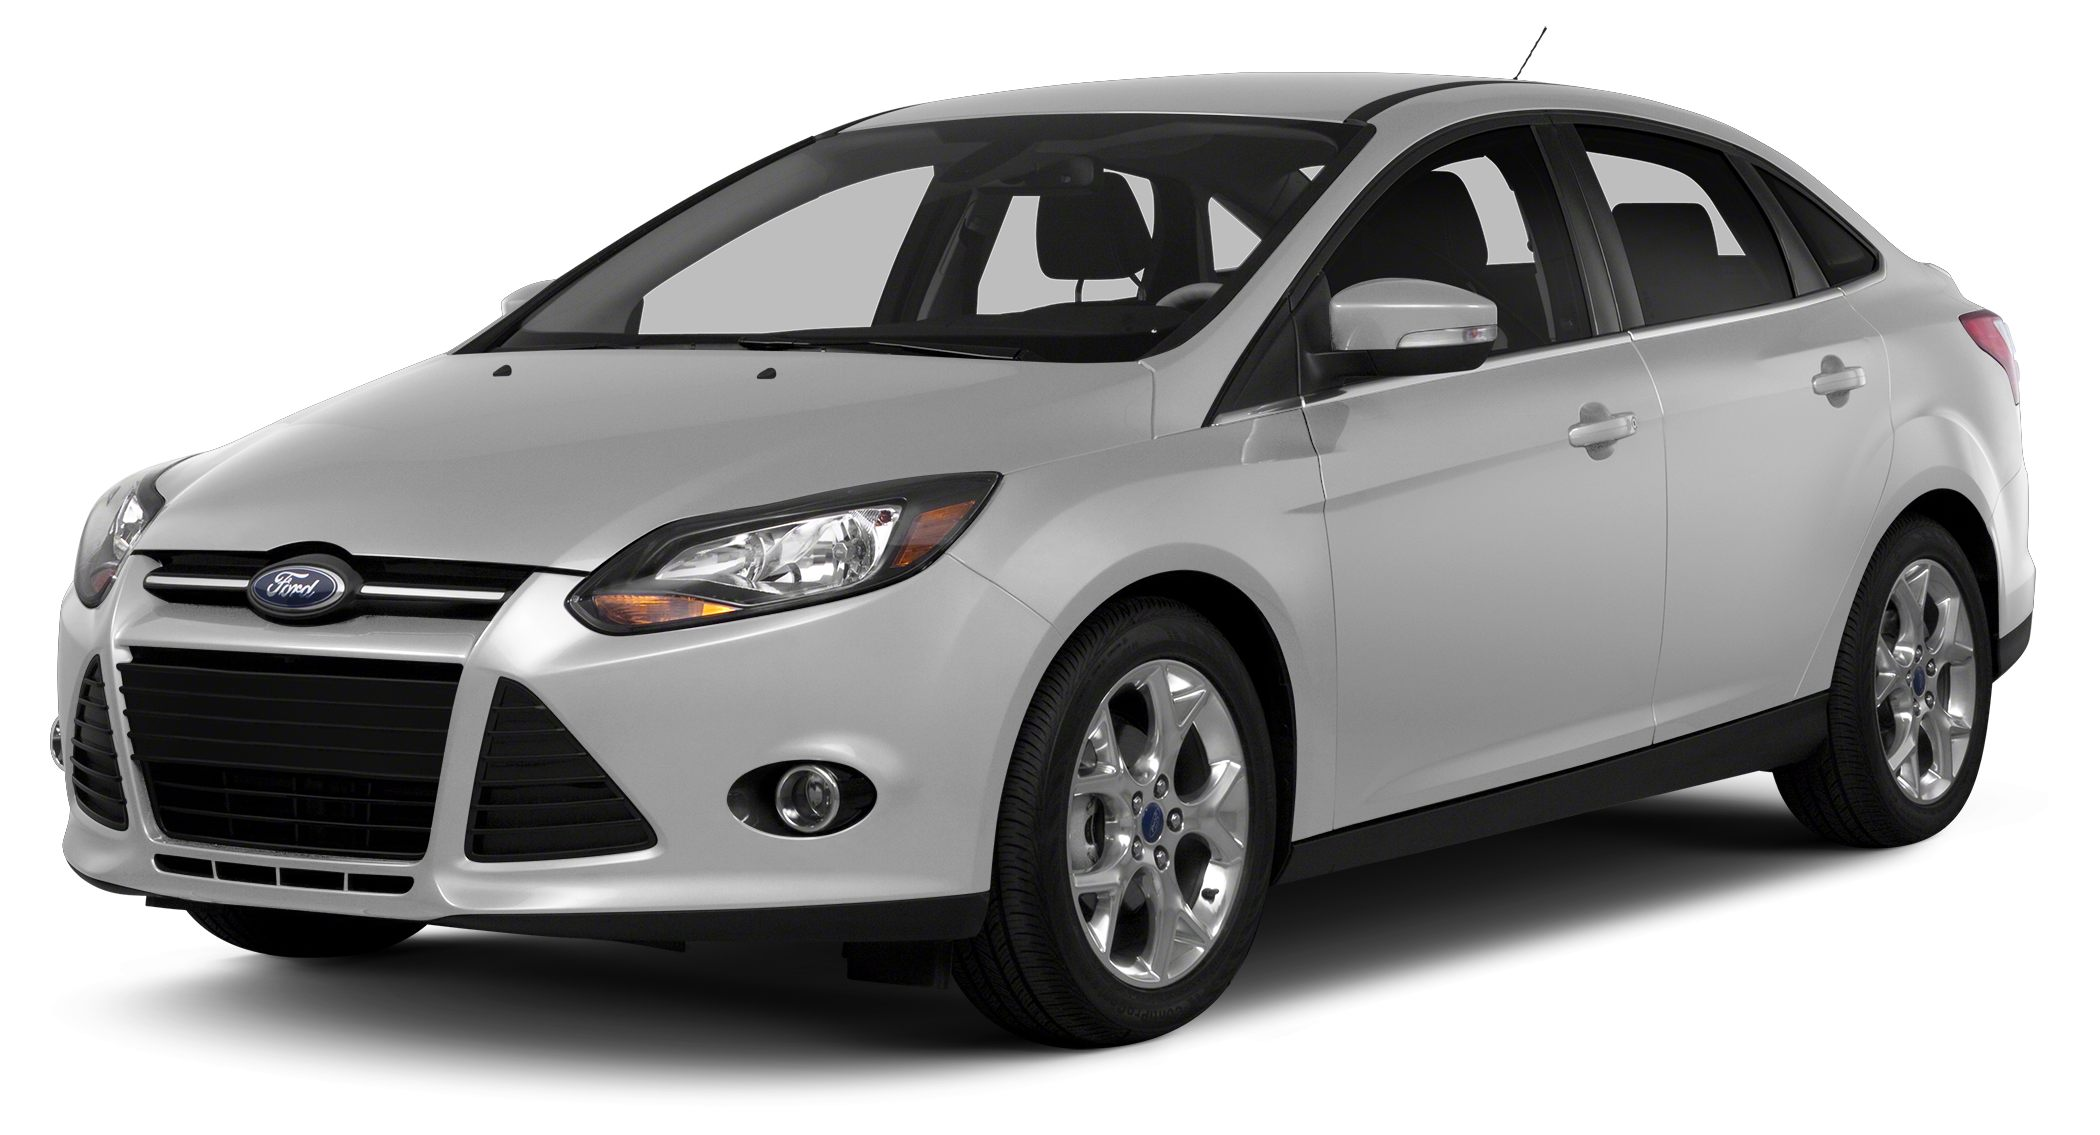 2014 Ford Focus Titanium Driving the 2014 Ford Focus is incredibly fun and enjoyable It has a dyn